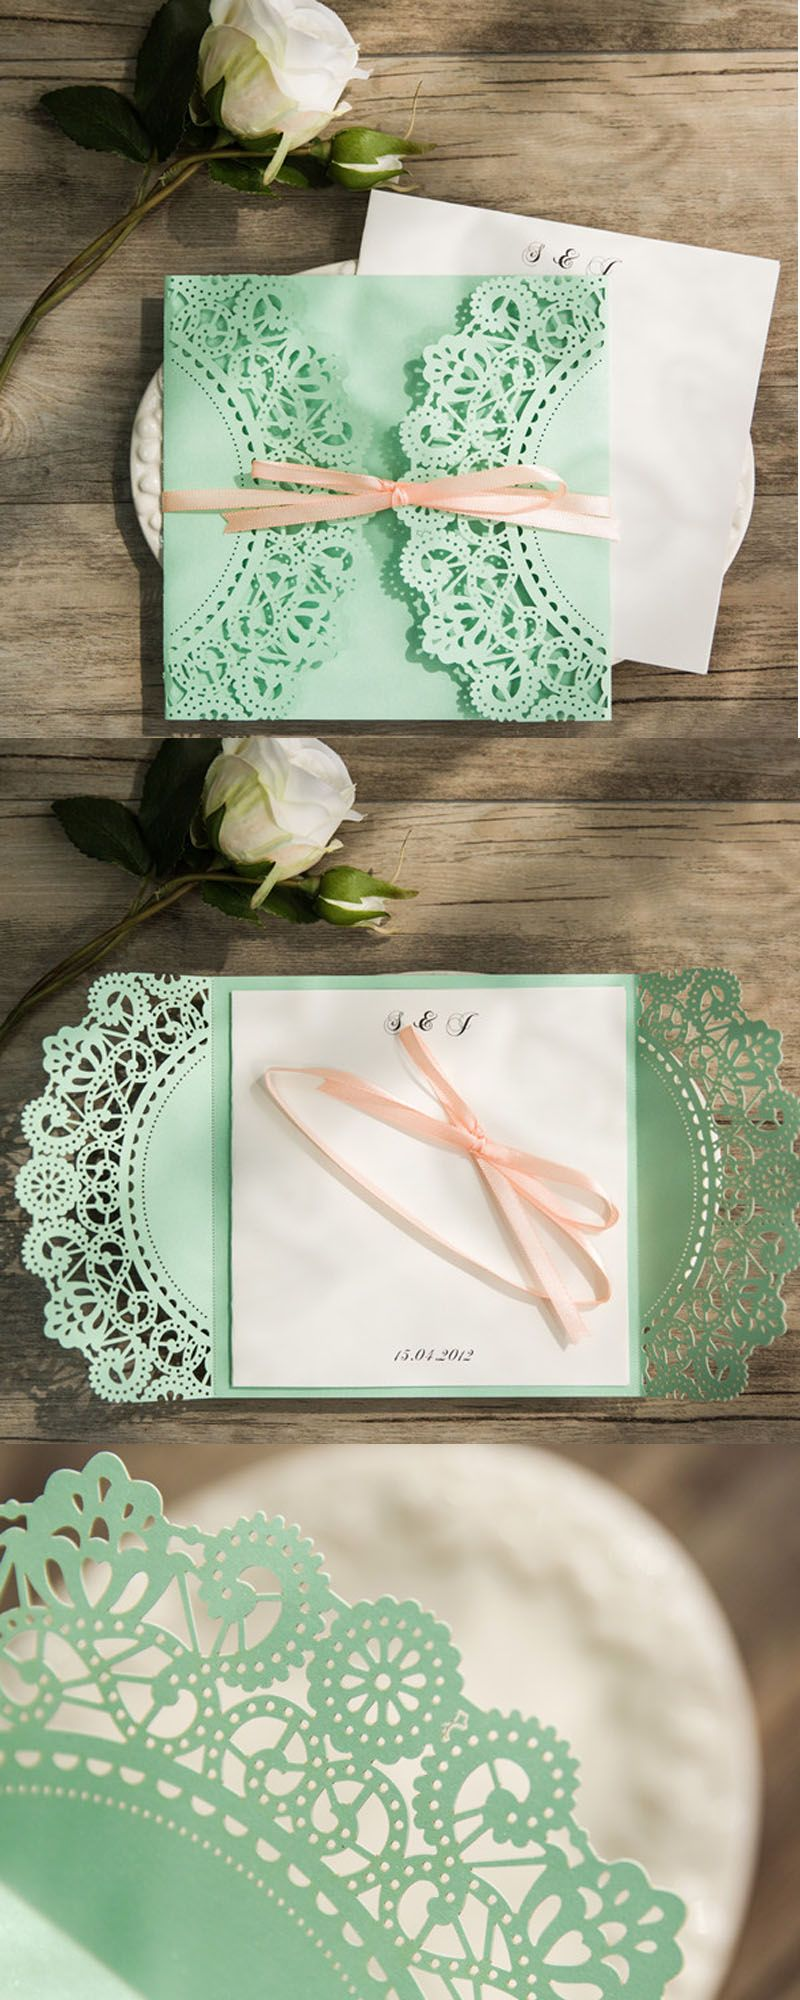 box wedding invitations online%0A Mint green wedding invitations  Doily laser cut wedding invitations